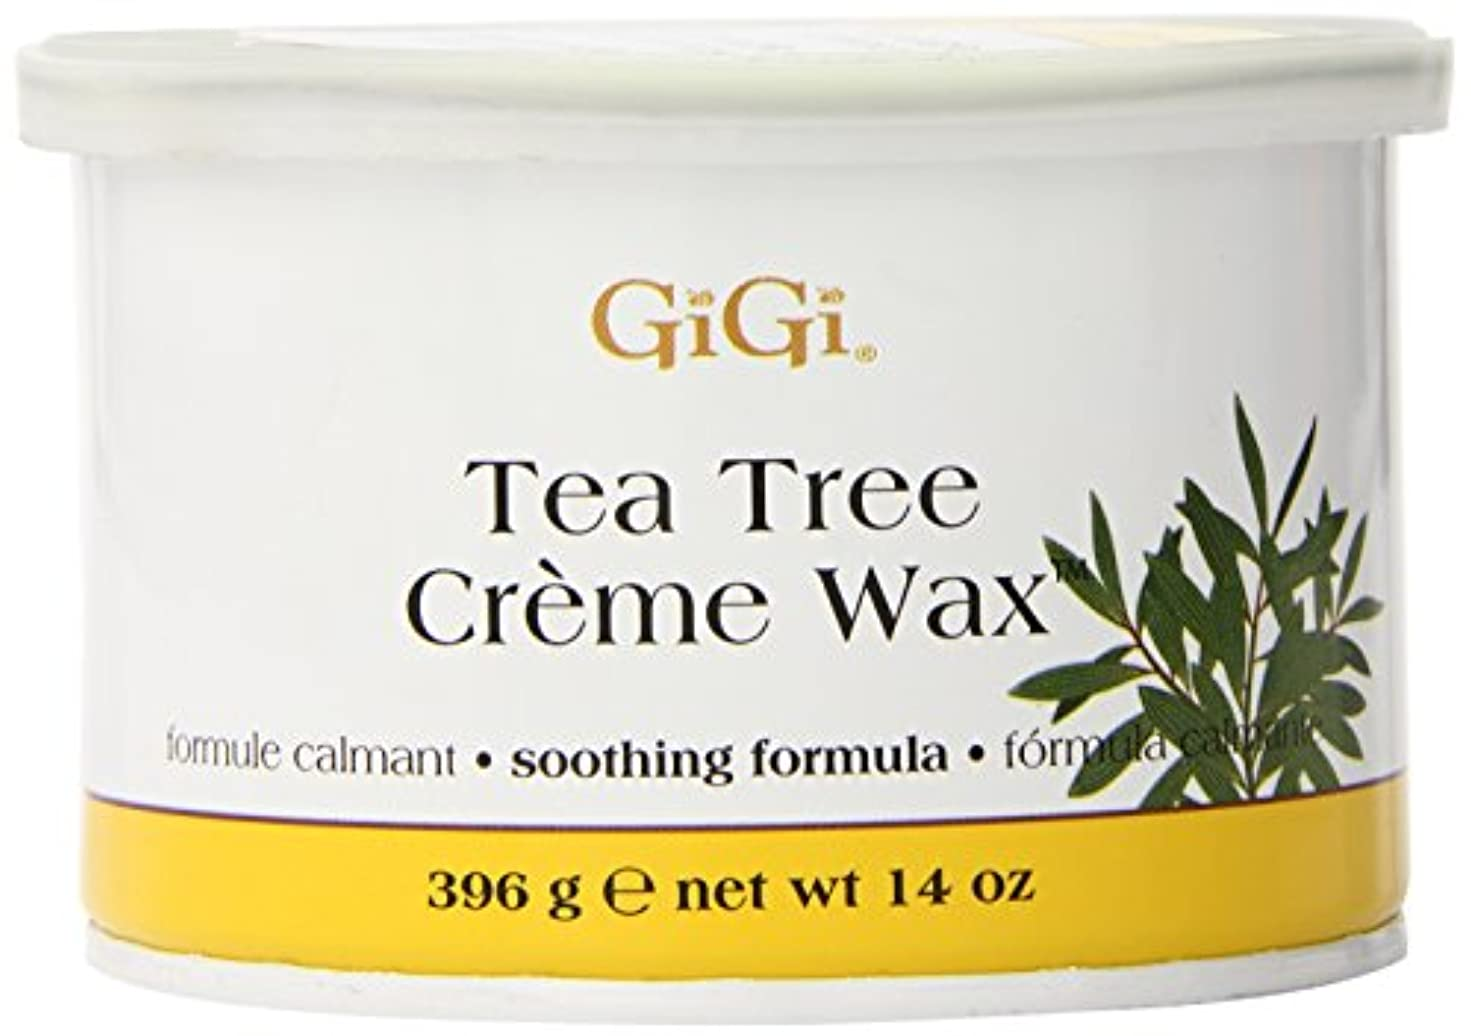 虫手入れ見捨てられたGiGi Tea Tree Cream Wax A Soothing Hair Removal Formula 396g